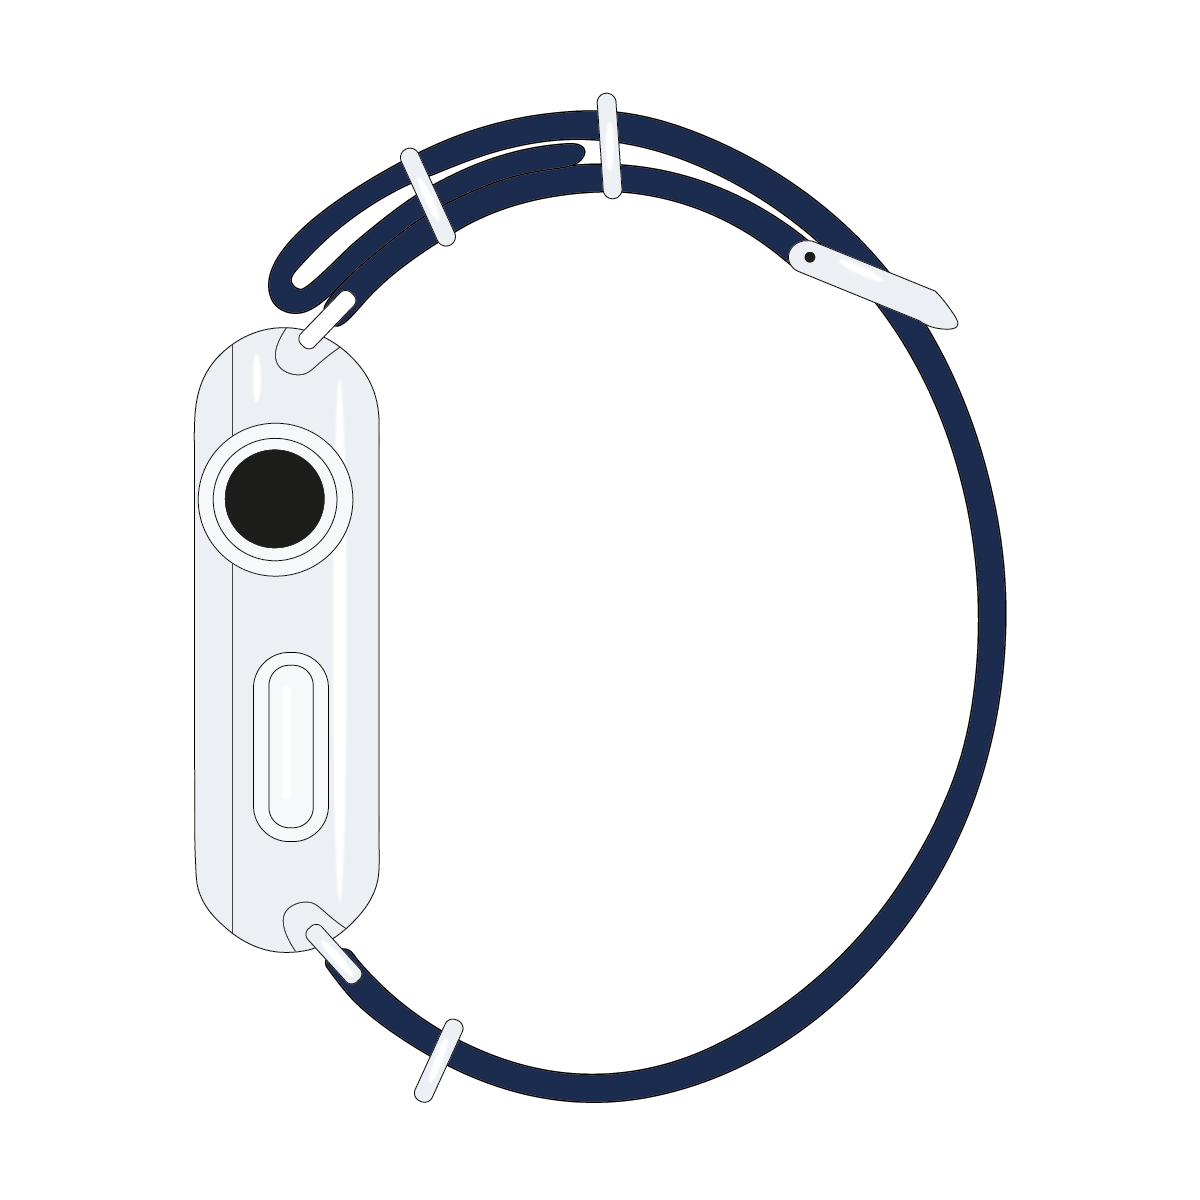 Correa para Apple Watch de nailon NATO en azul marino/blanco | Roobaya – Bild 4